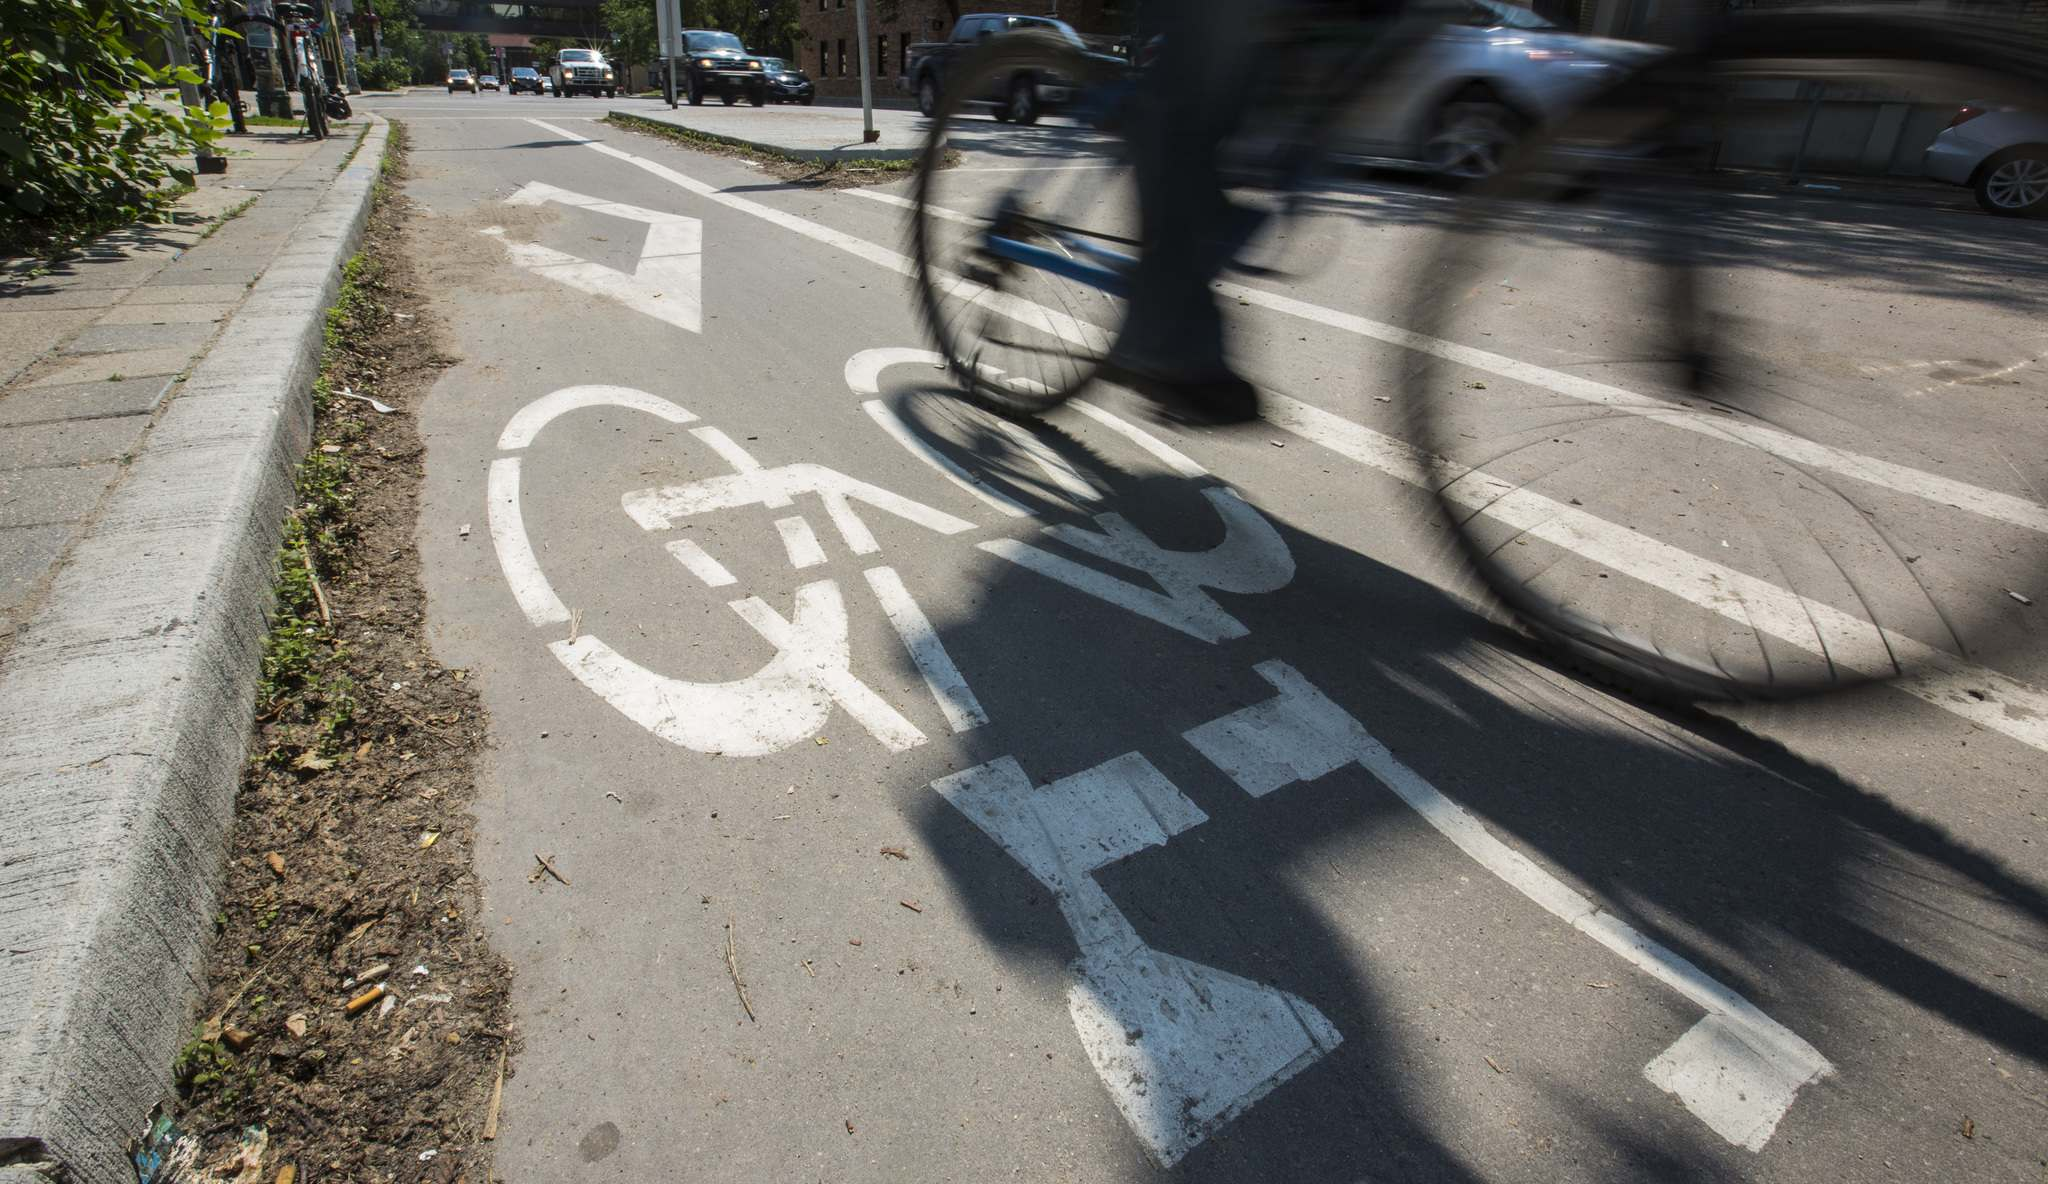 MIKAELA MACKENZIE / WINNIPEG FREE PRESS FILES</p><p>Cyclists use the divided bike lane on Sherbrook Street. </p>